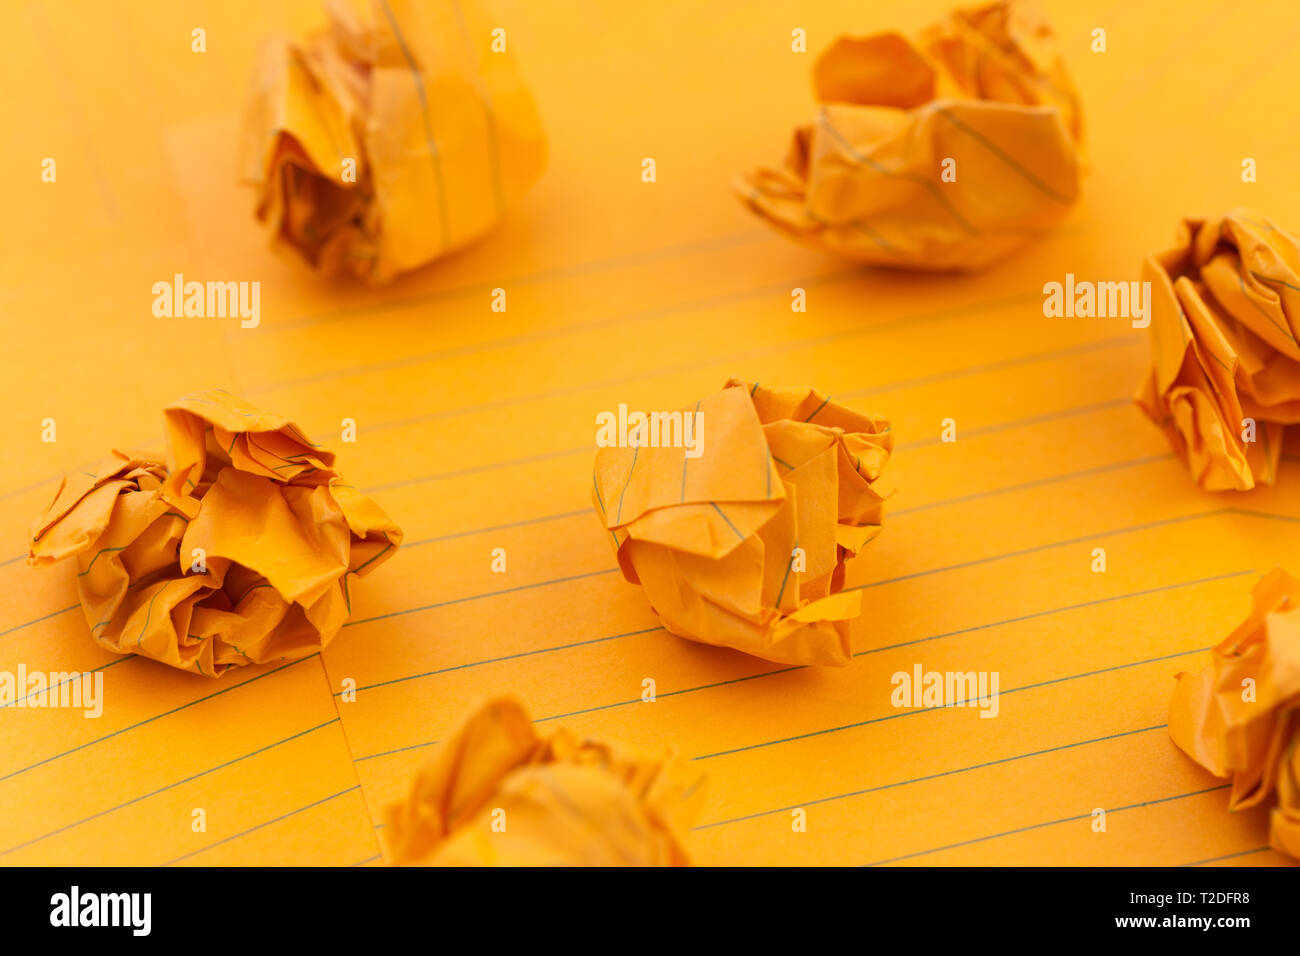 Concept Orange crumpled sheets of paper, empty space for your text - Stock Image